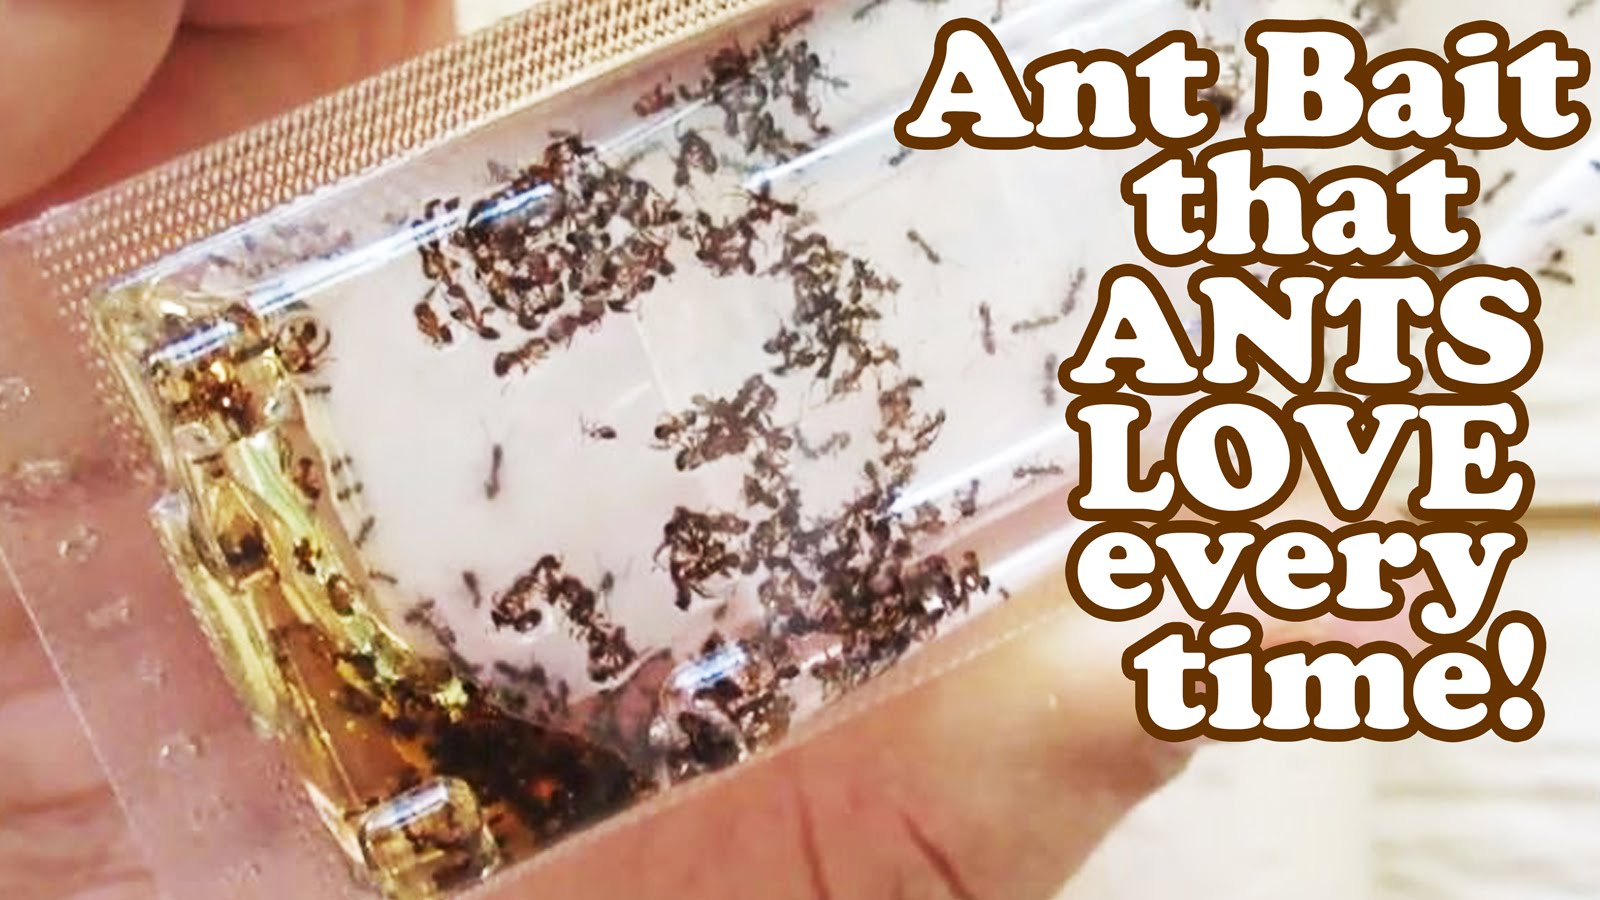 How To Get Rid Of Sugar Ants How To Get Rid Of Sugar Ants In Kitchen